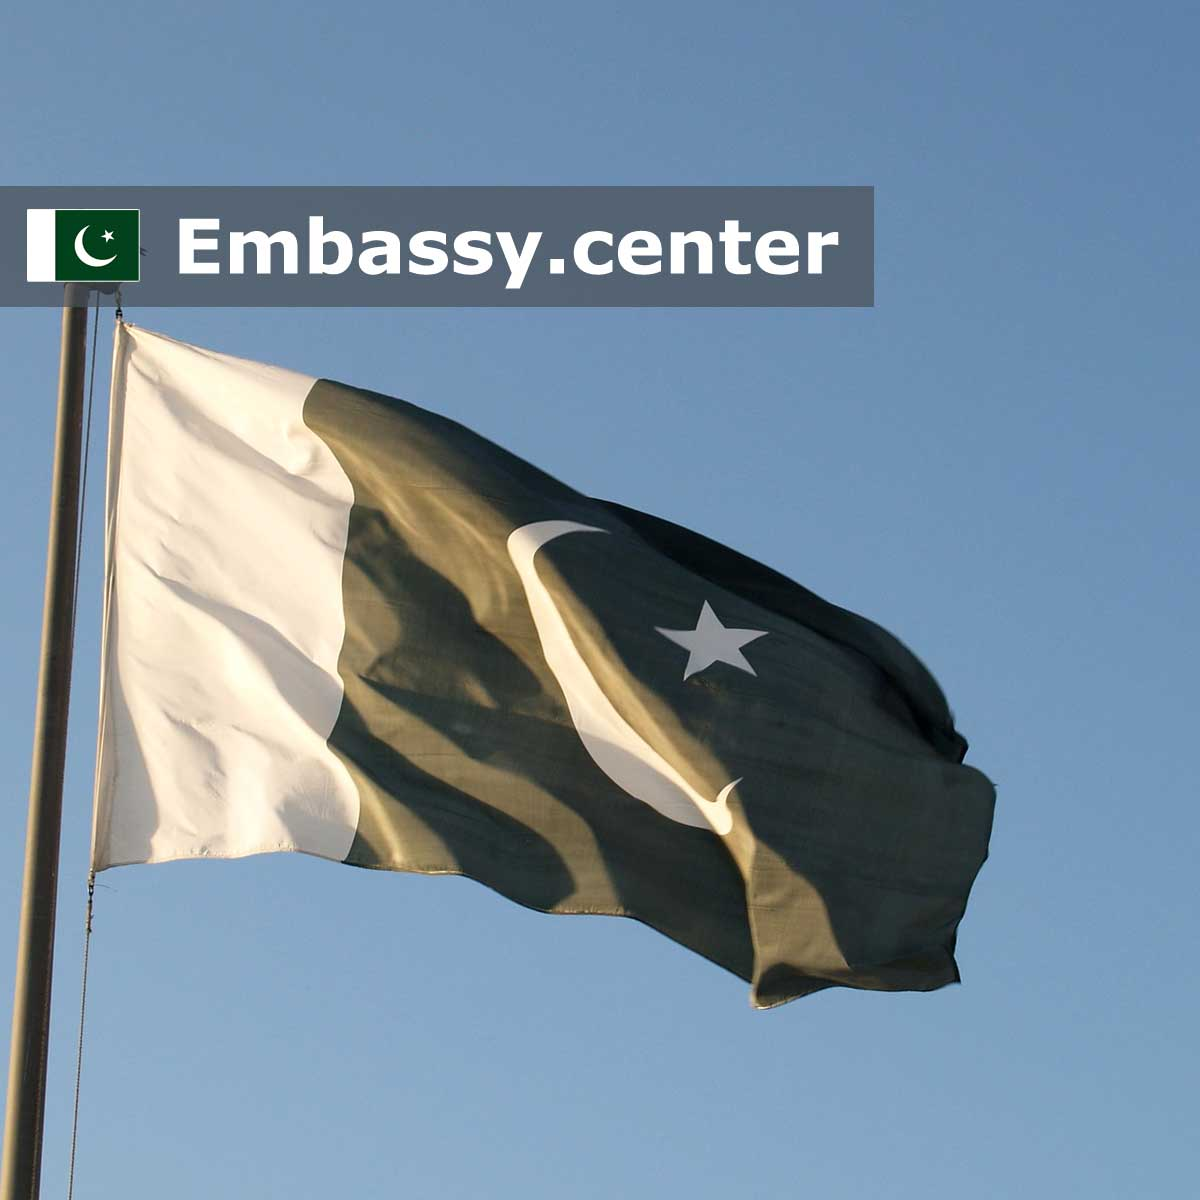 Embassy of Pakistan in Dushanbe, Tajikistan - www embassy center